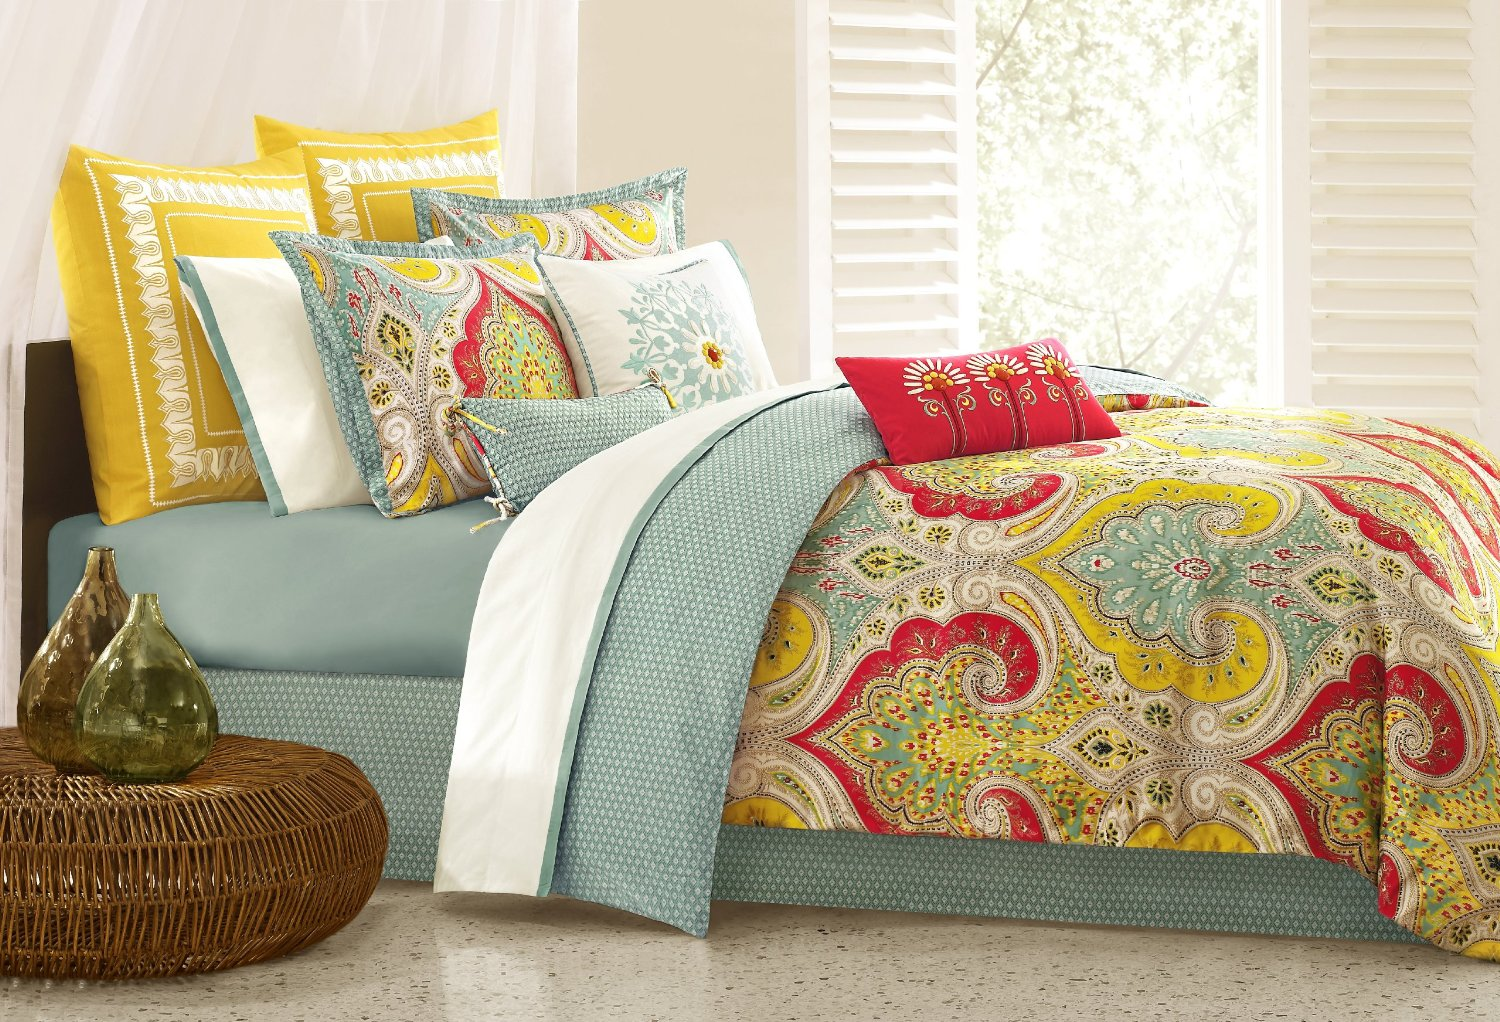 Queen Size Bedspread Sets | Cotton Chenille Bedspread Queen | Queen Bedspreads